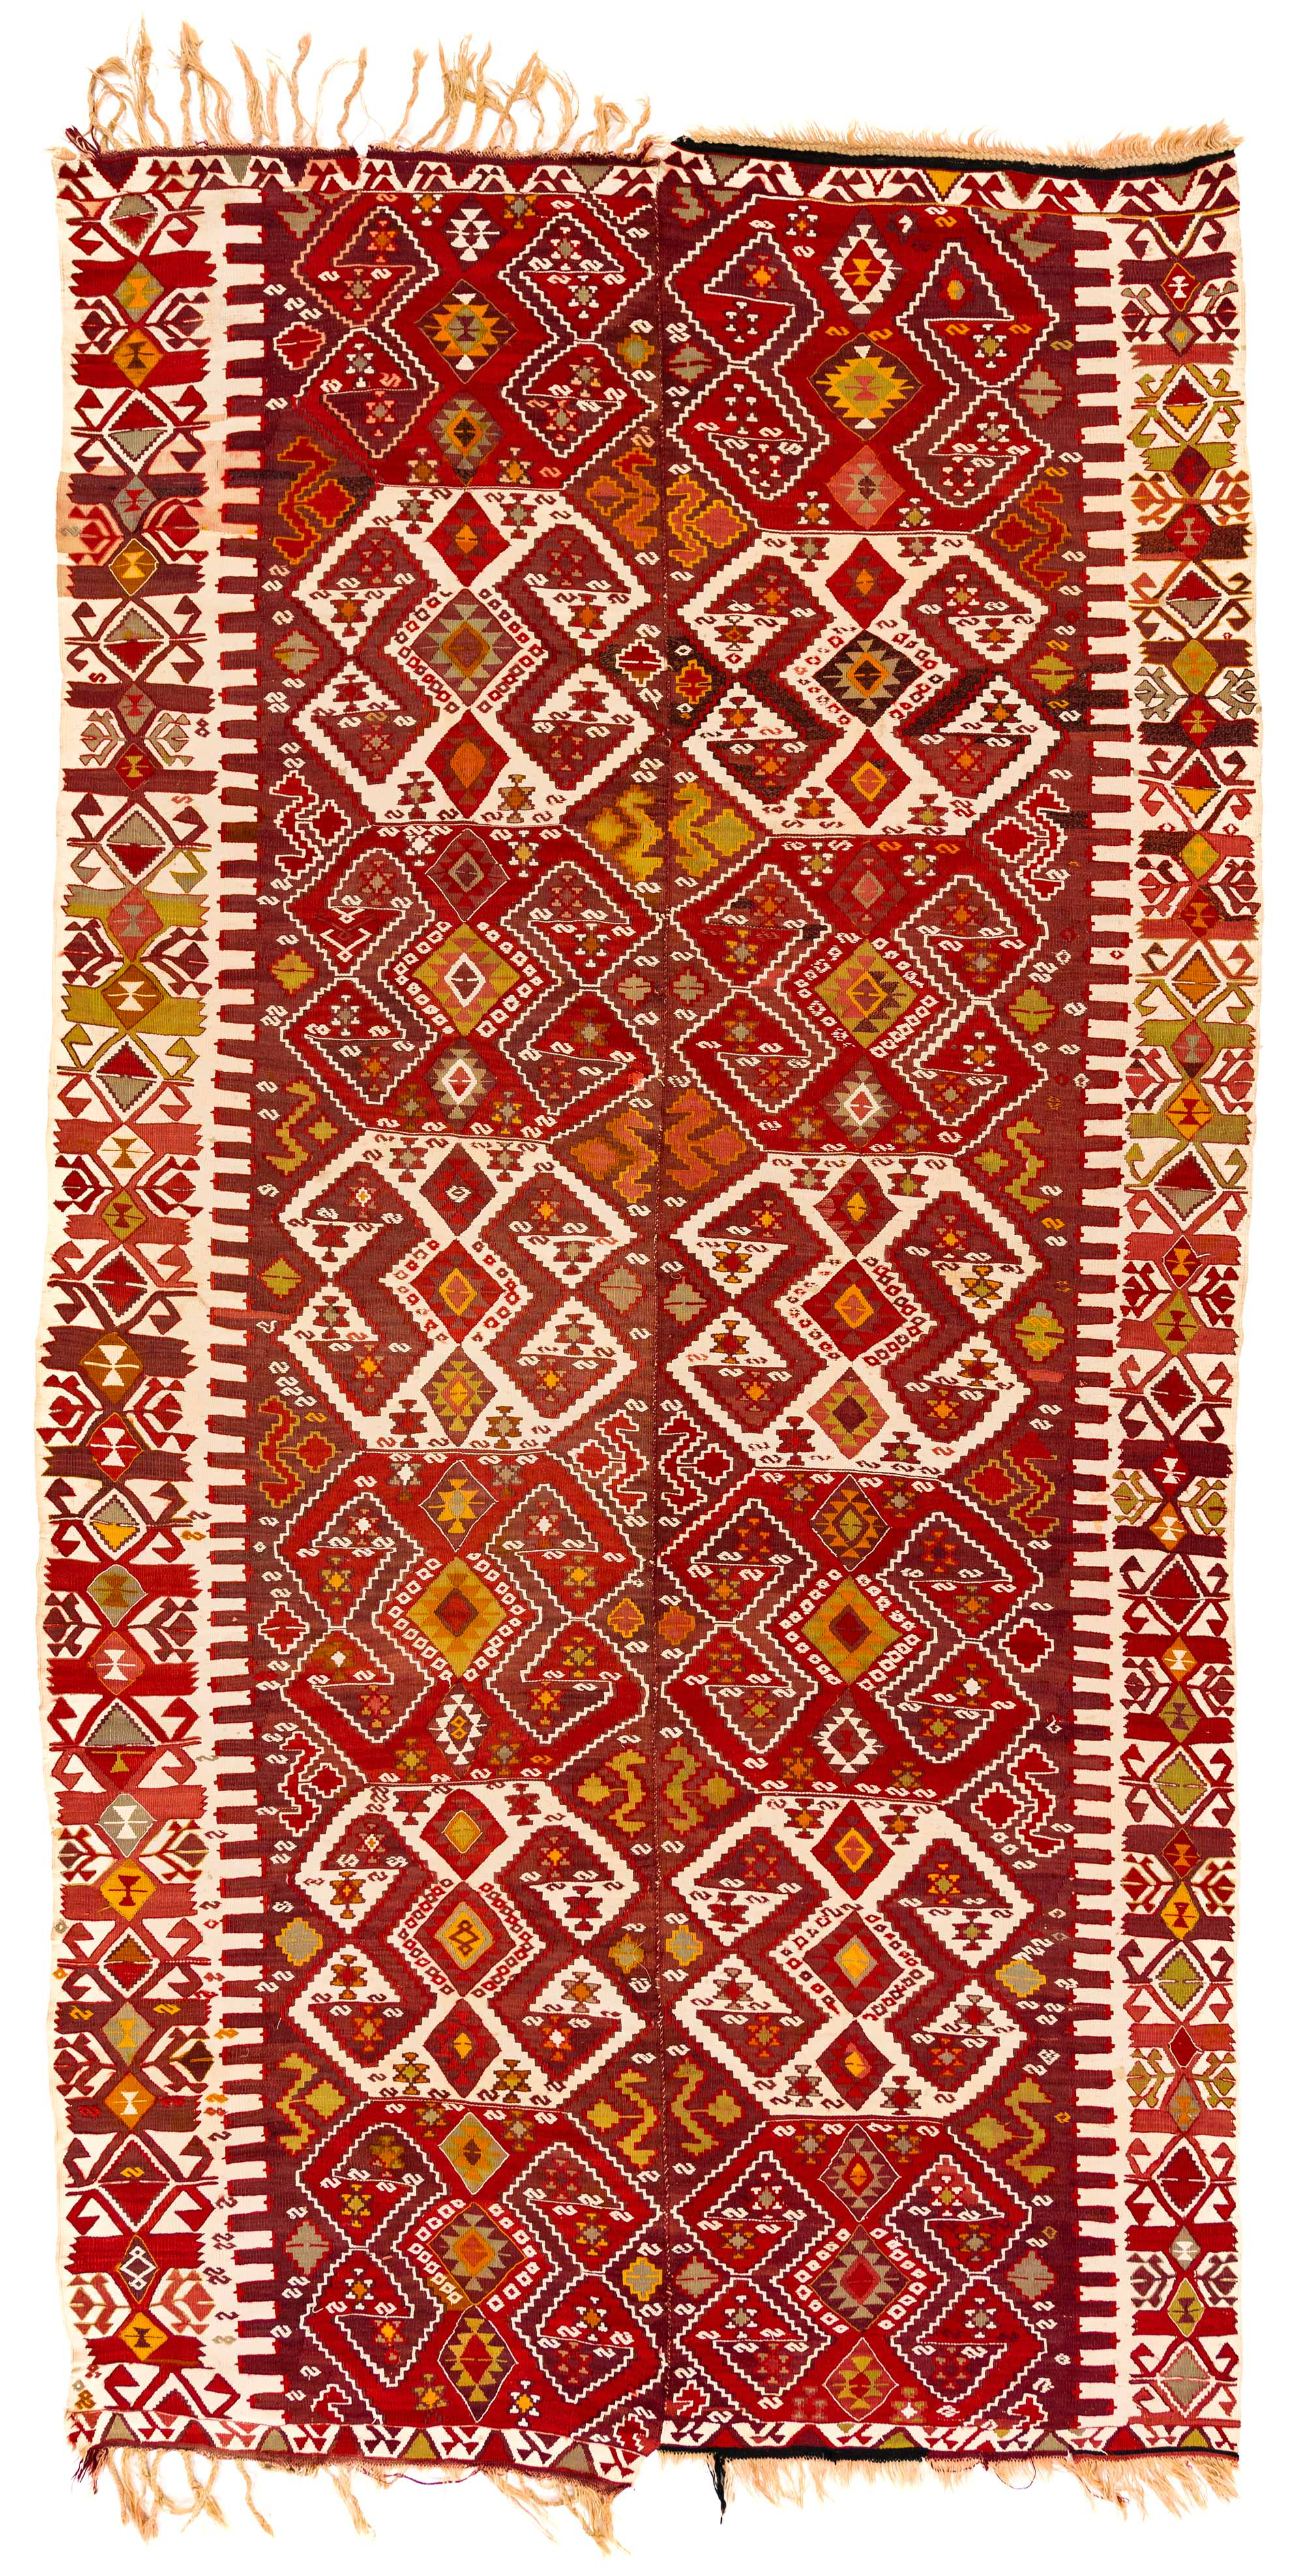 antiques area kilim antique small product rug rugs vintage wholesale size turkish